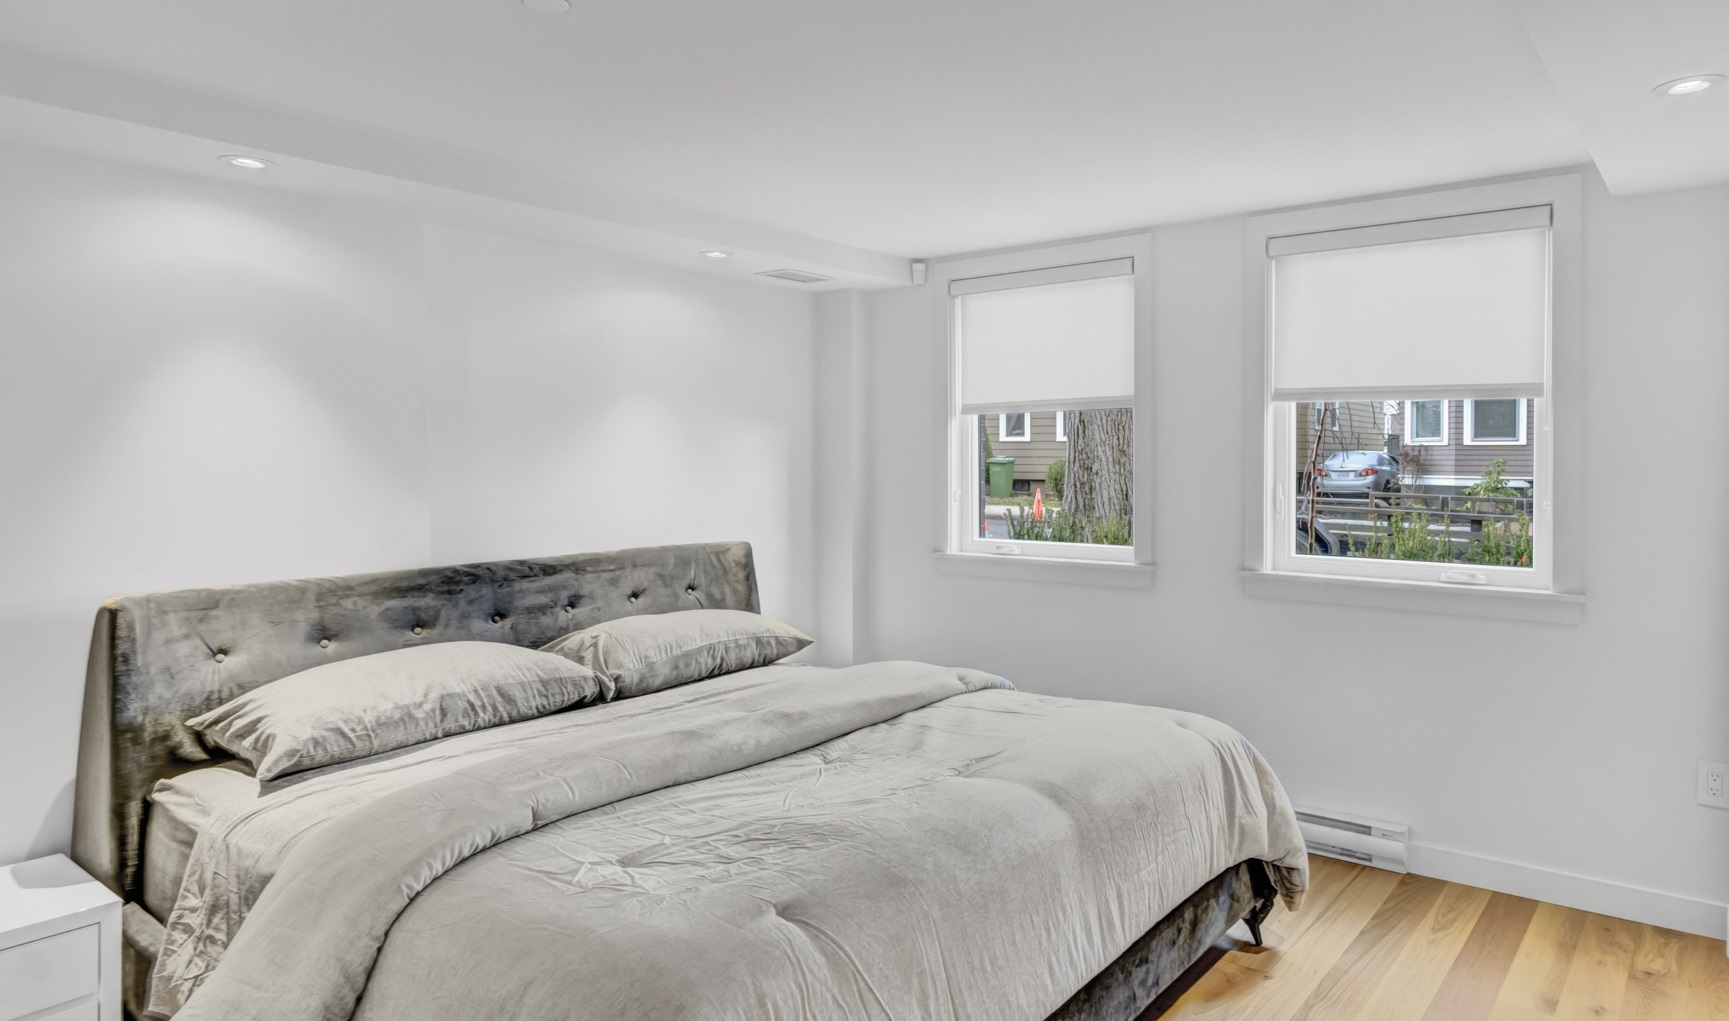 6262 Pepperell, Halifax, NS, 1 Bedroom Bedrooms, ,1 BathroomBathrooms,Residential,For Sale,Pepperell,202100585